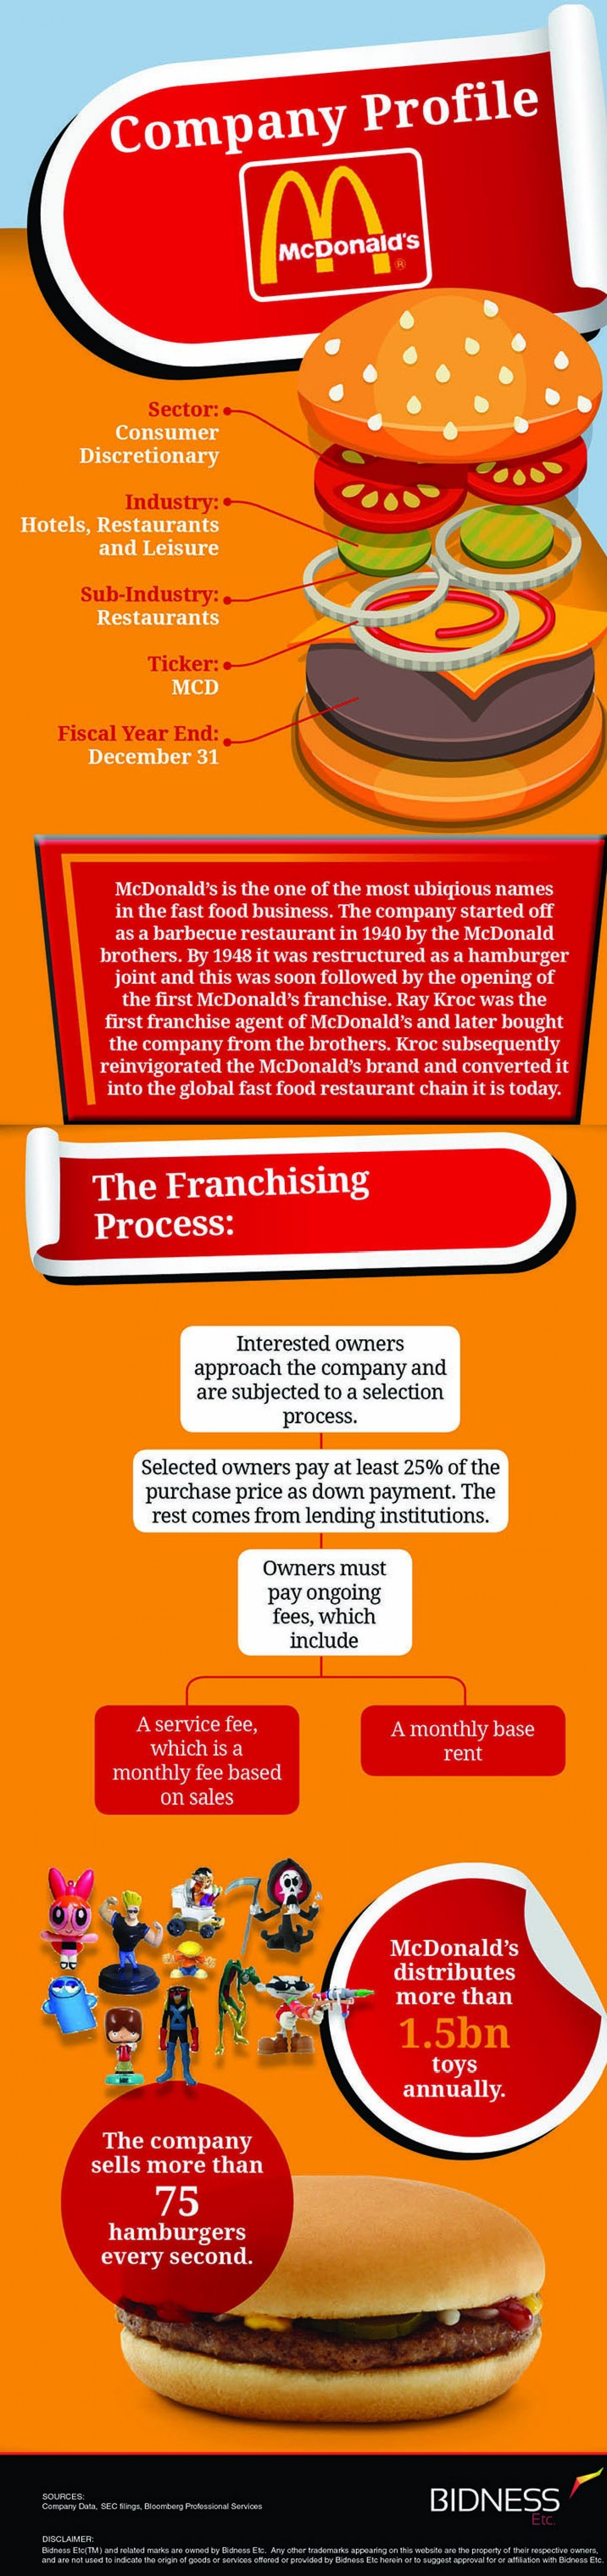 a profile overview of the mcdonalds corporation Mcdonald's is an american fast food company, founded in 1940 as a restaurant operated by richard and maurice mcdonald, in san bernardino, california, united states.